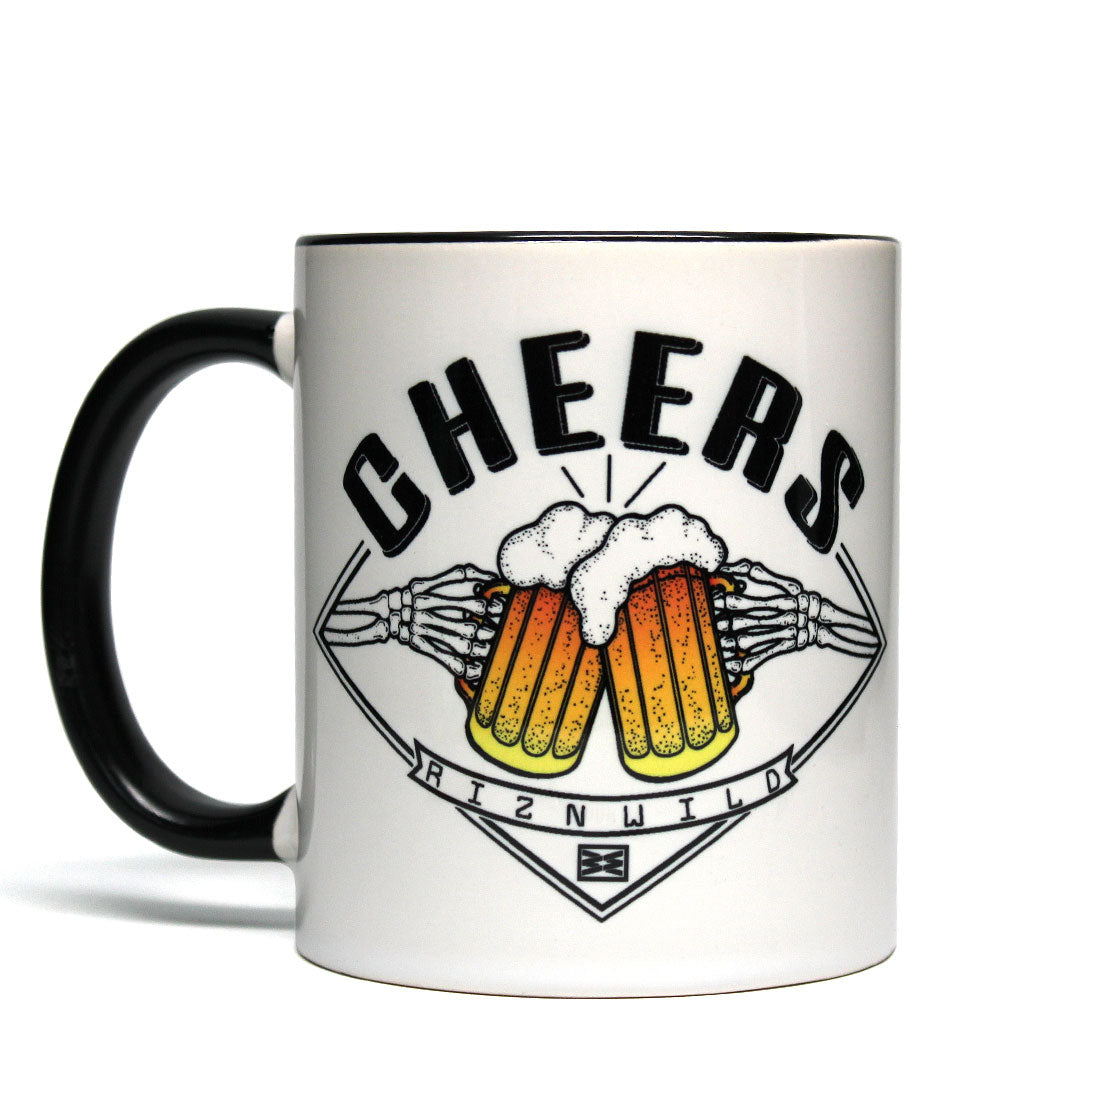 Cheers Coffee Mug